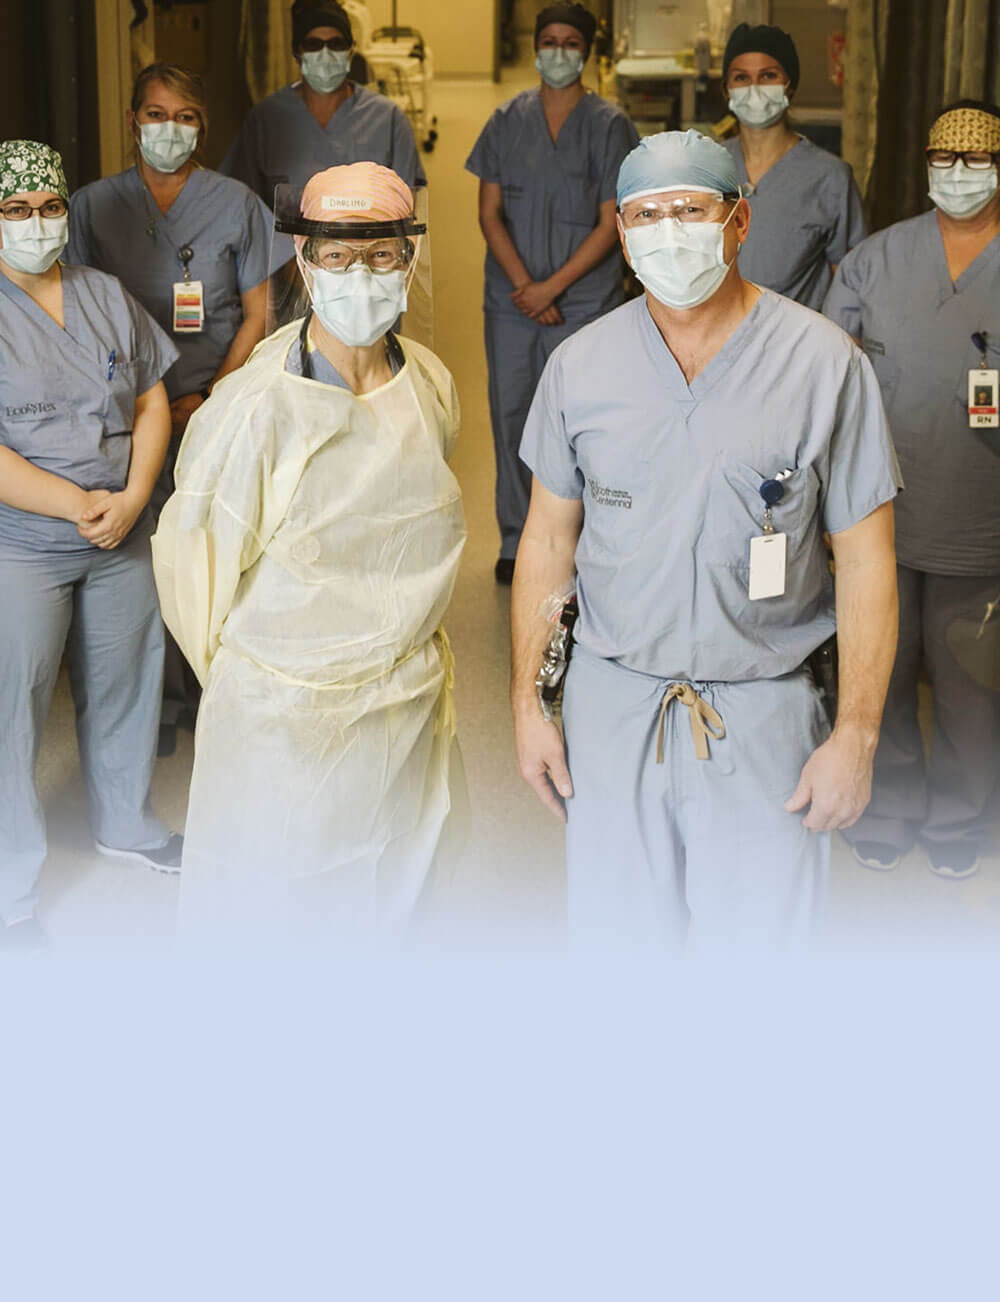 Hospital staff standing in hallway wearing masks